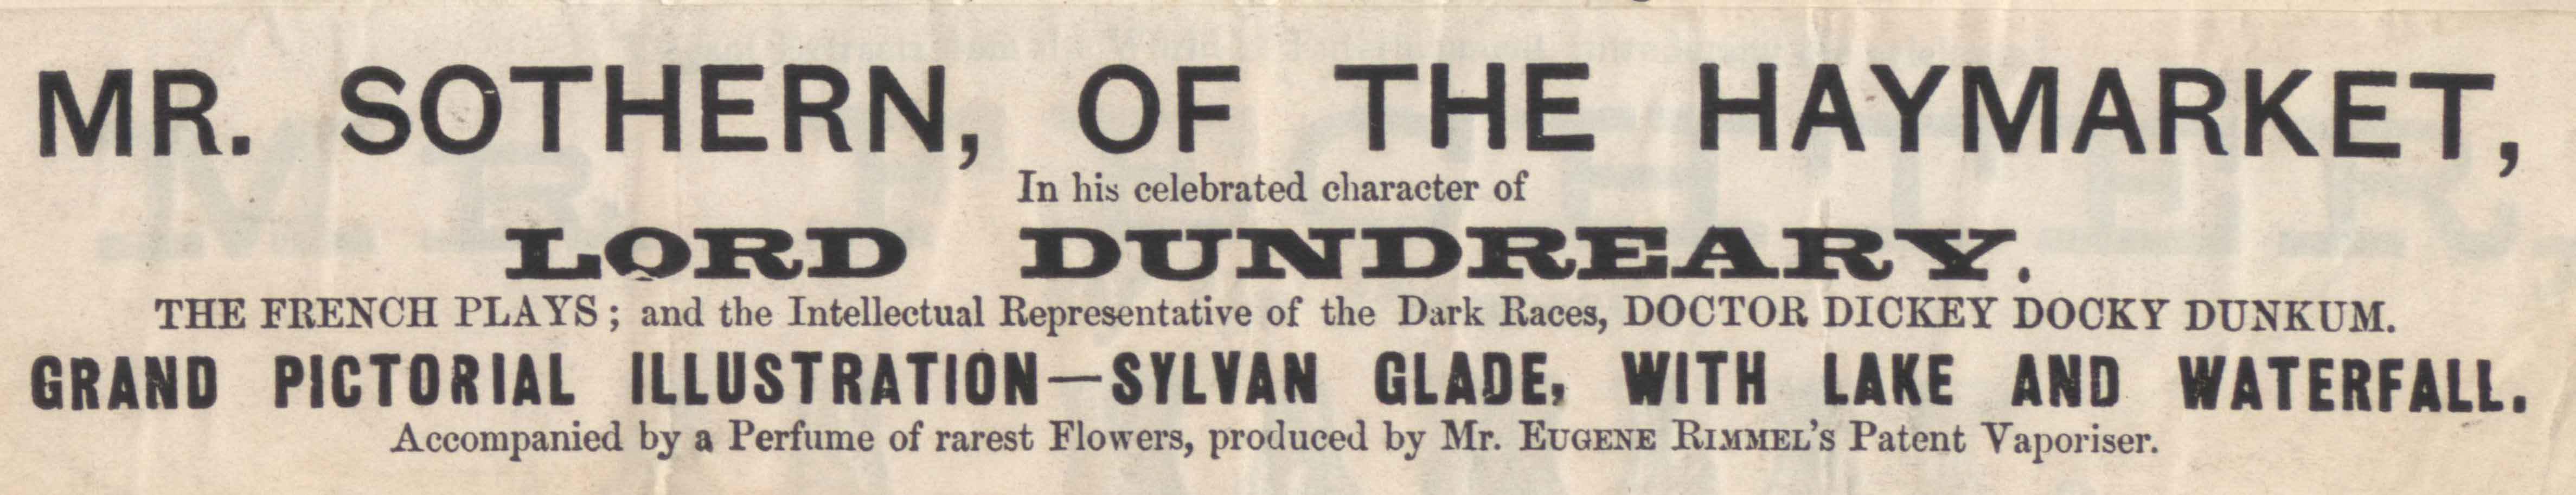 detail from W.S. Woodin playbill